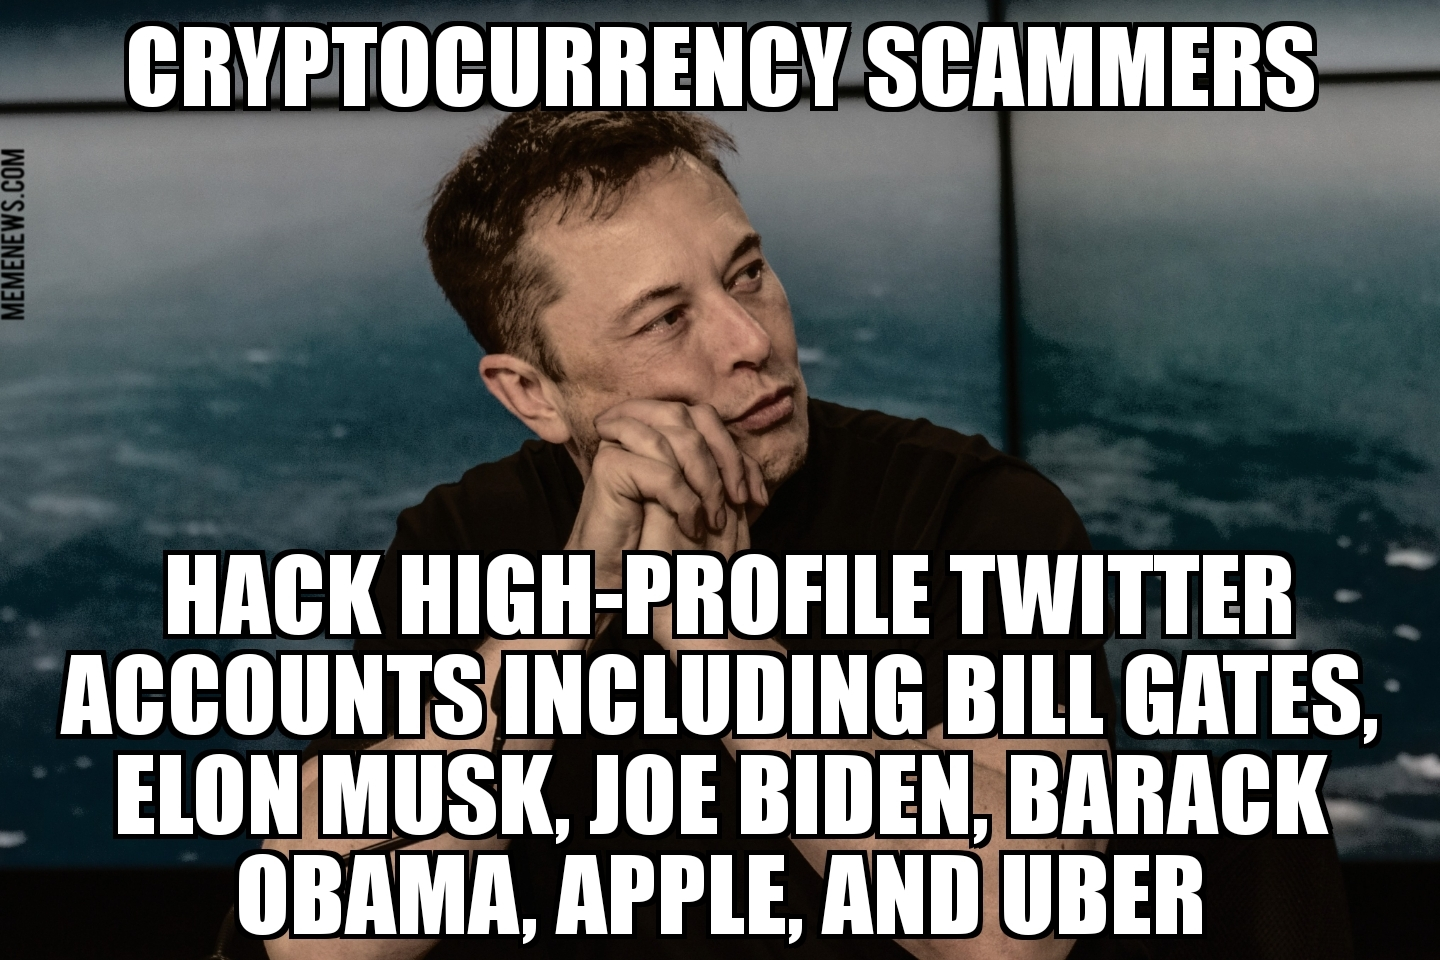 hacker cryptocurrency